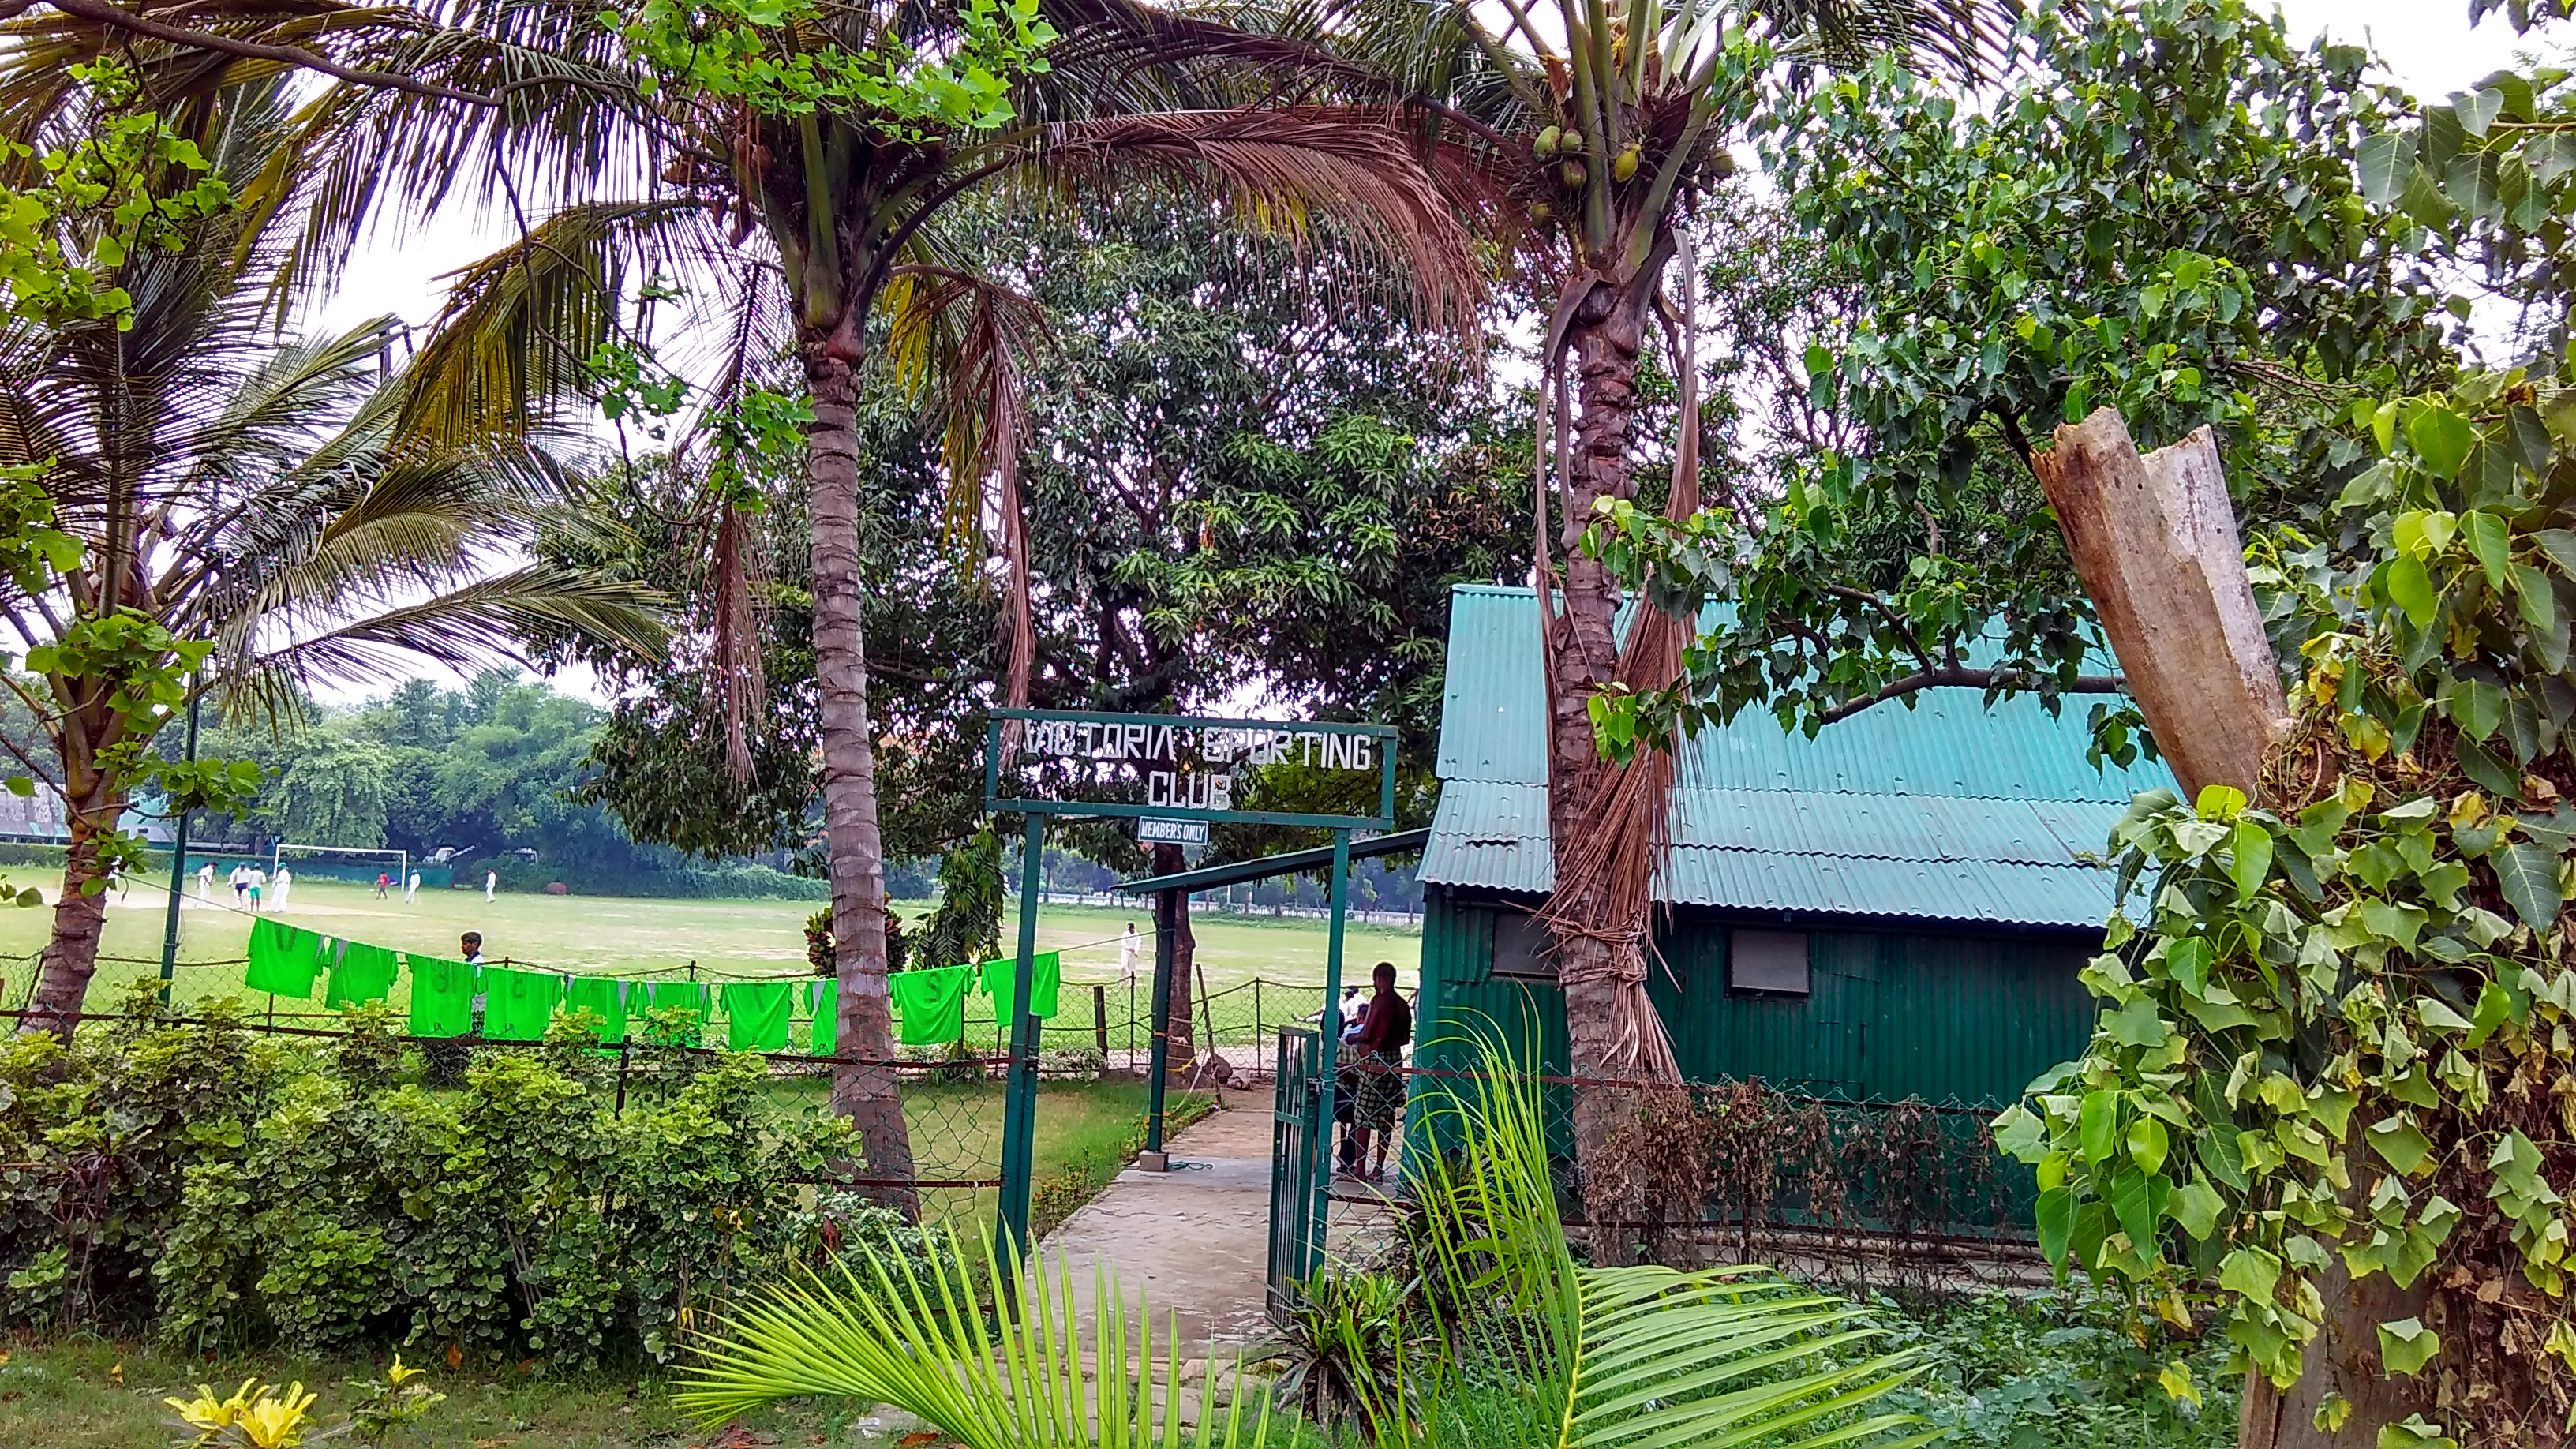 Victoria Sporting Club. Photo by Abhimanyu Sengupta